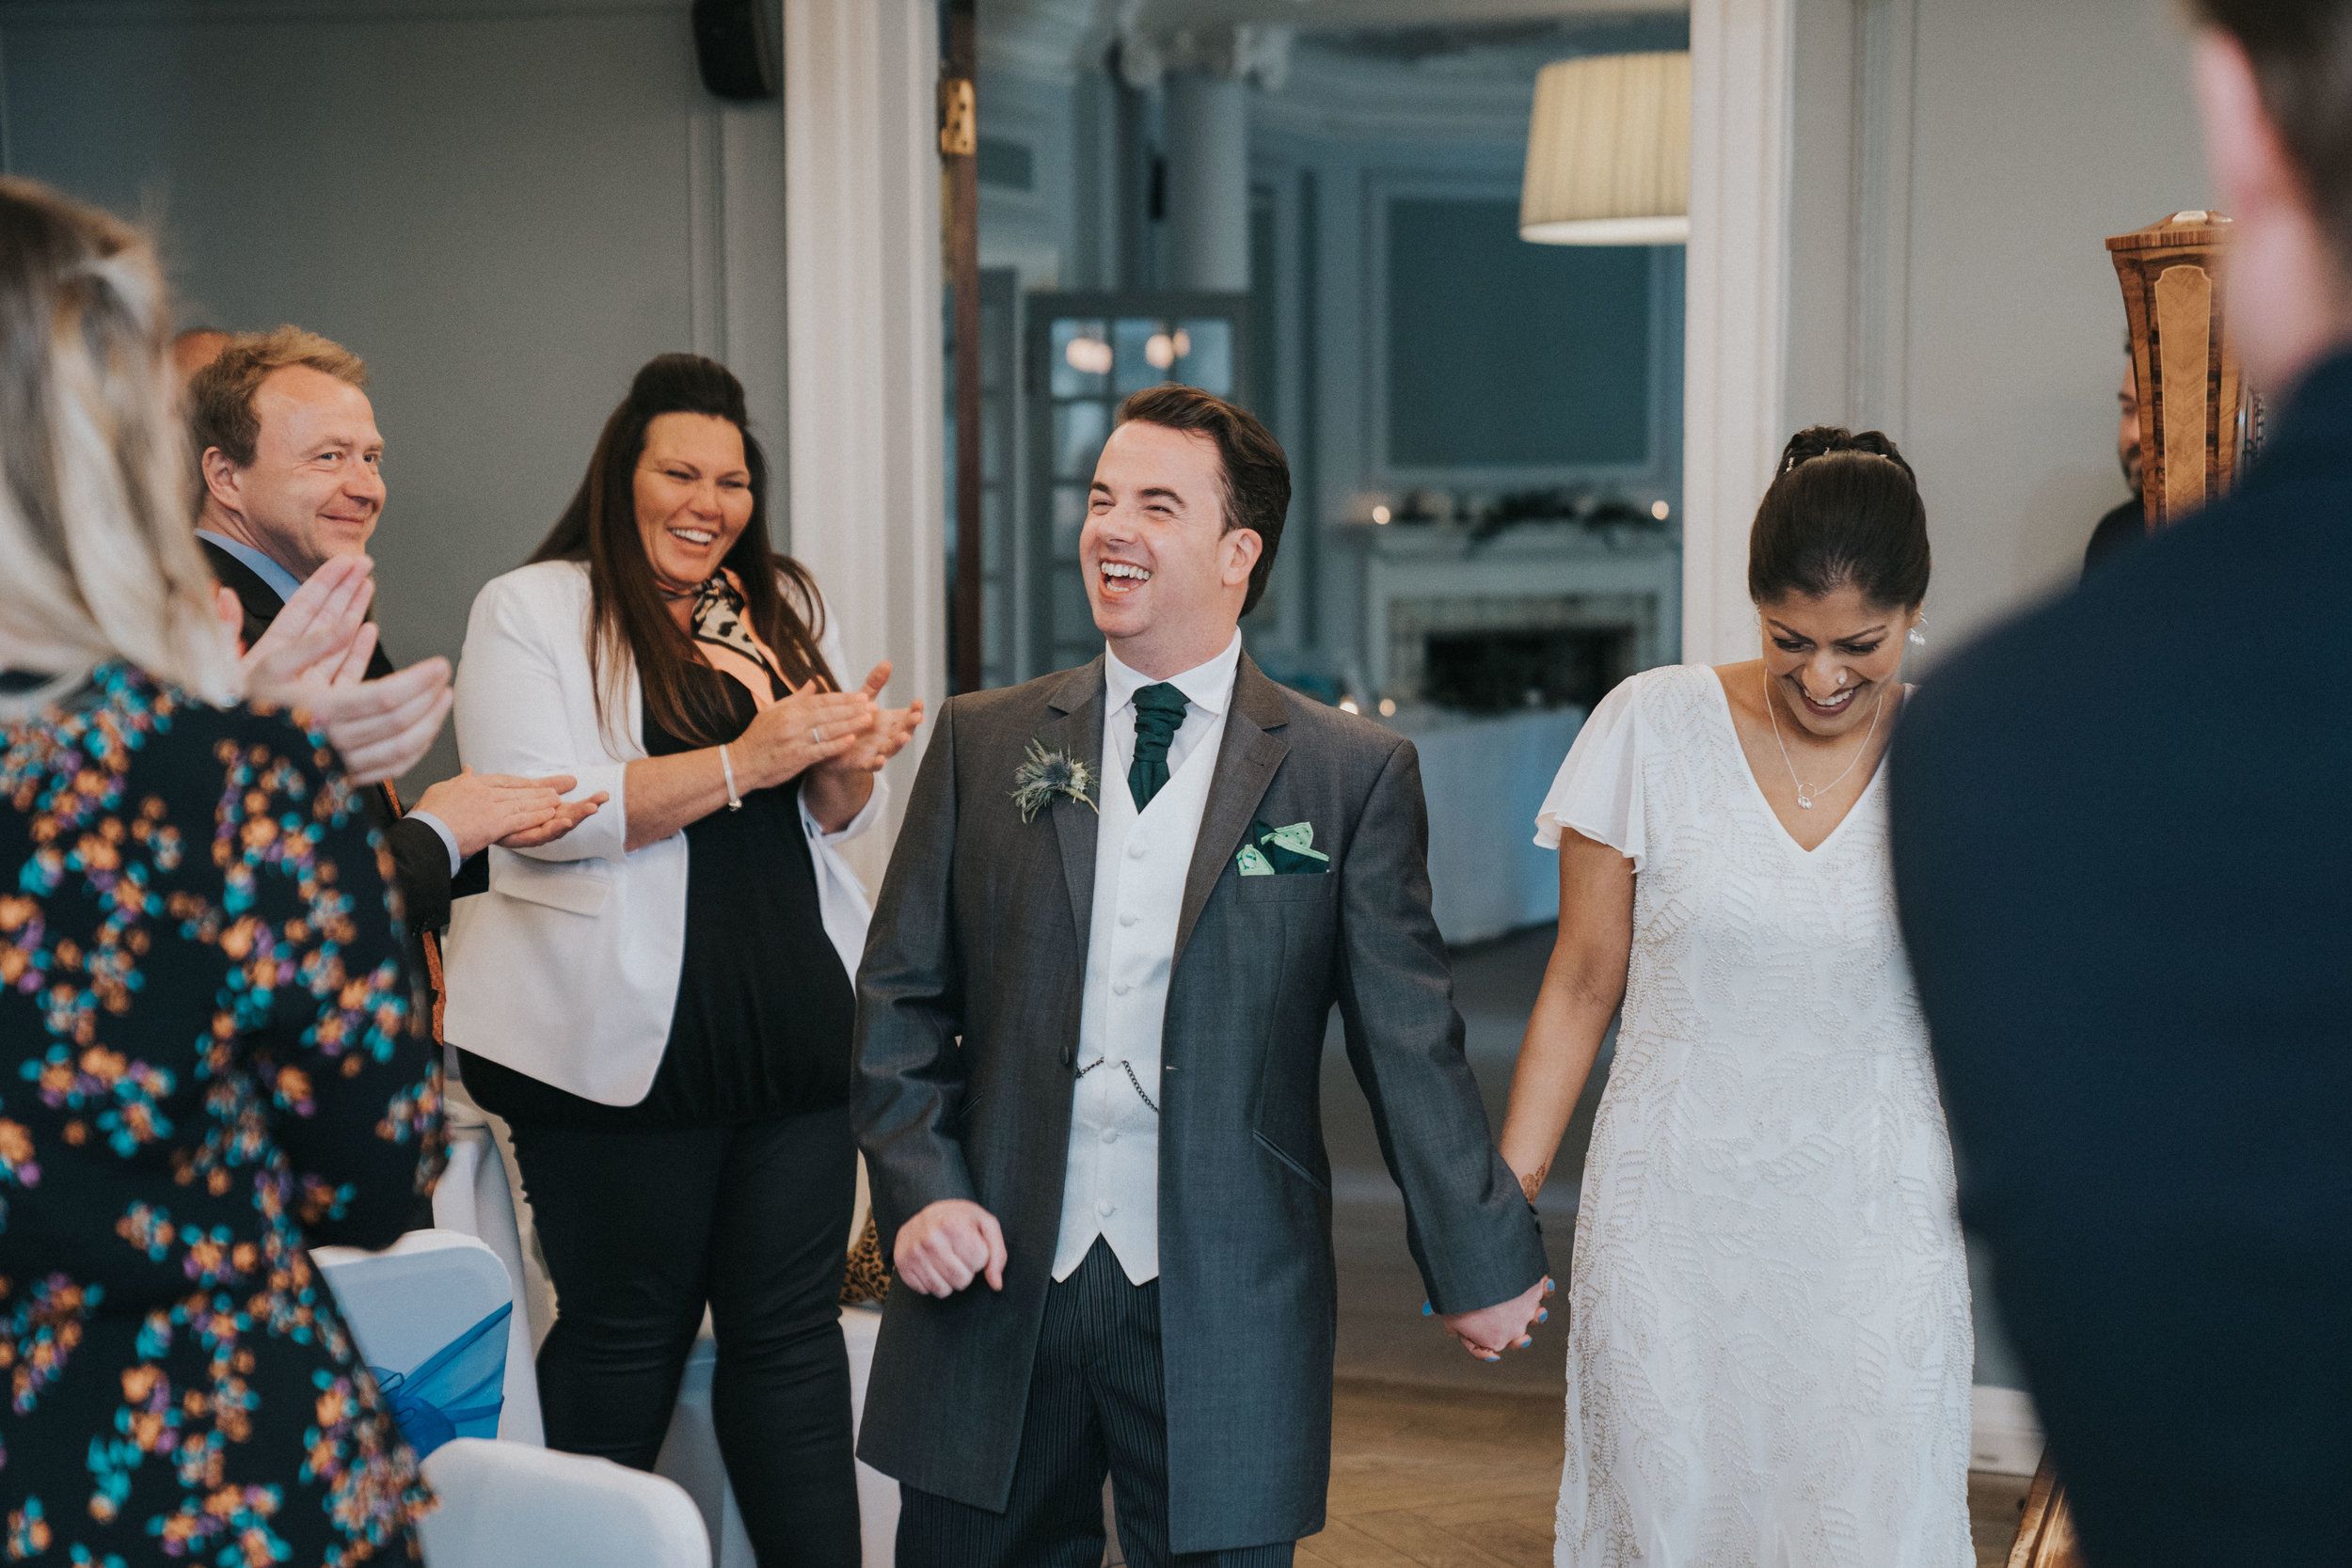 gorse-hill-hotel-wedding-photography-videography-surrey-london-44